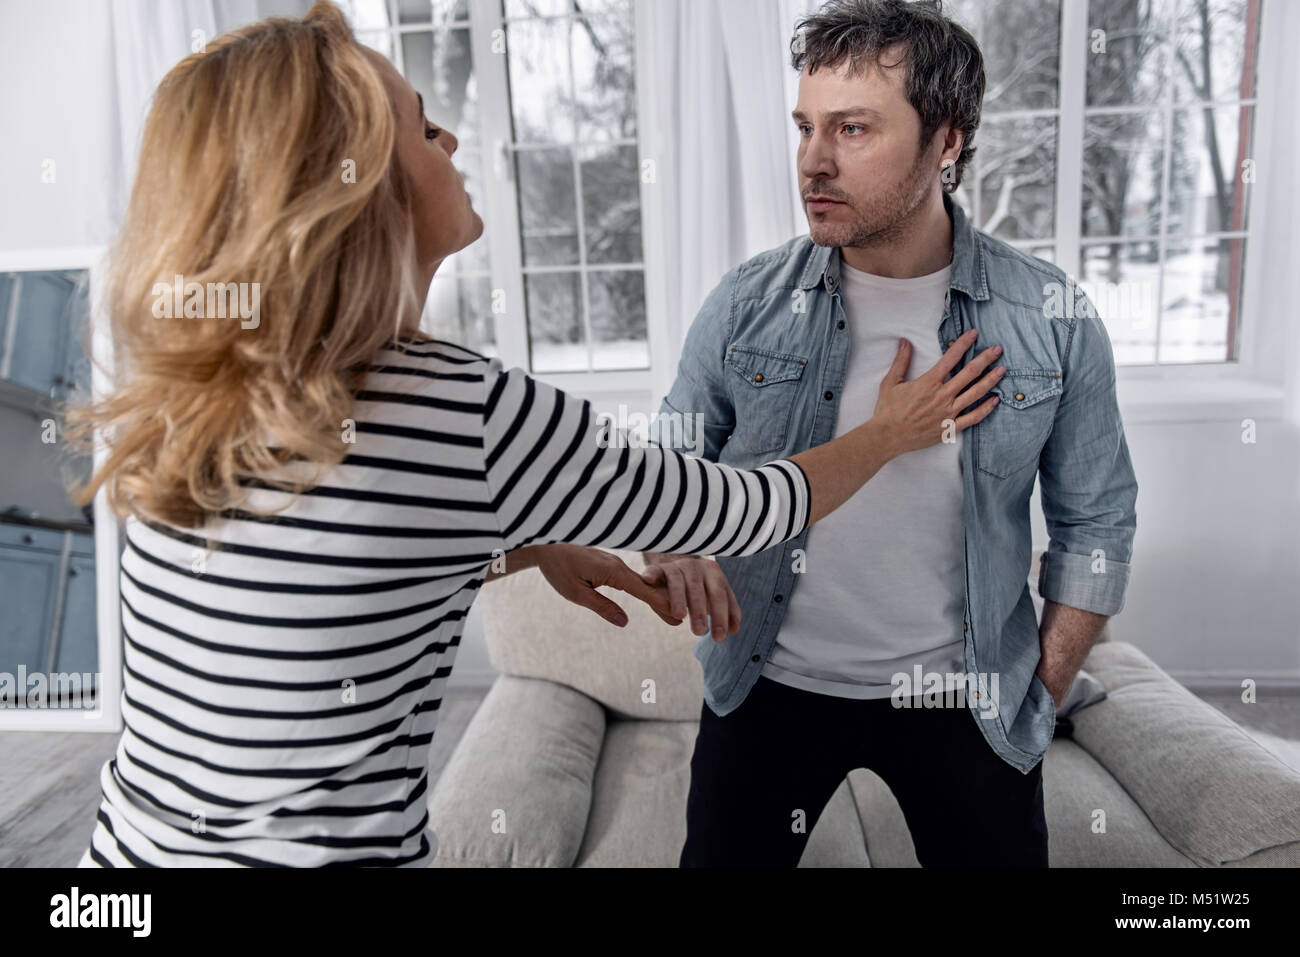 Unshaved drunk man looking at his desperate wife while talking to her - Stock Image